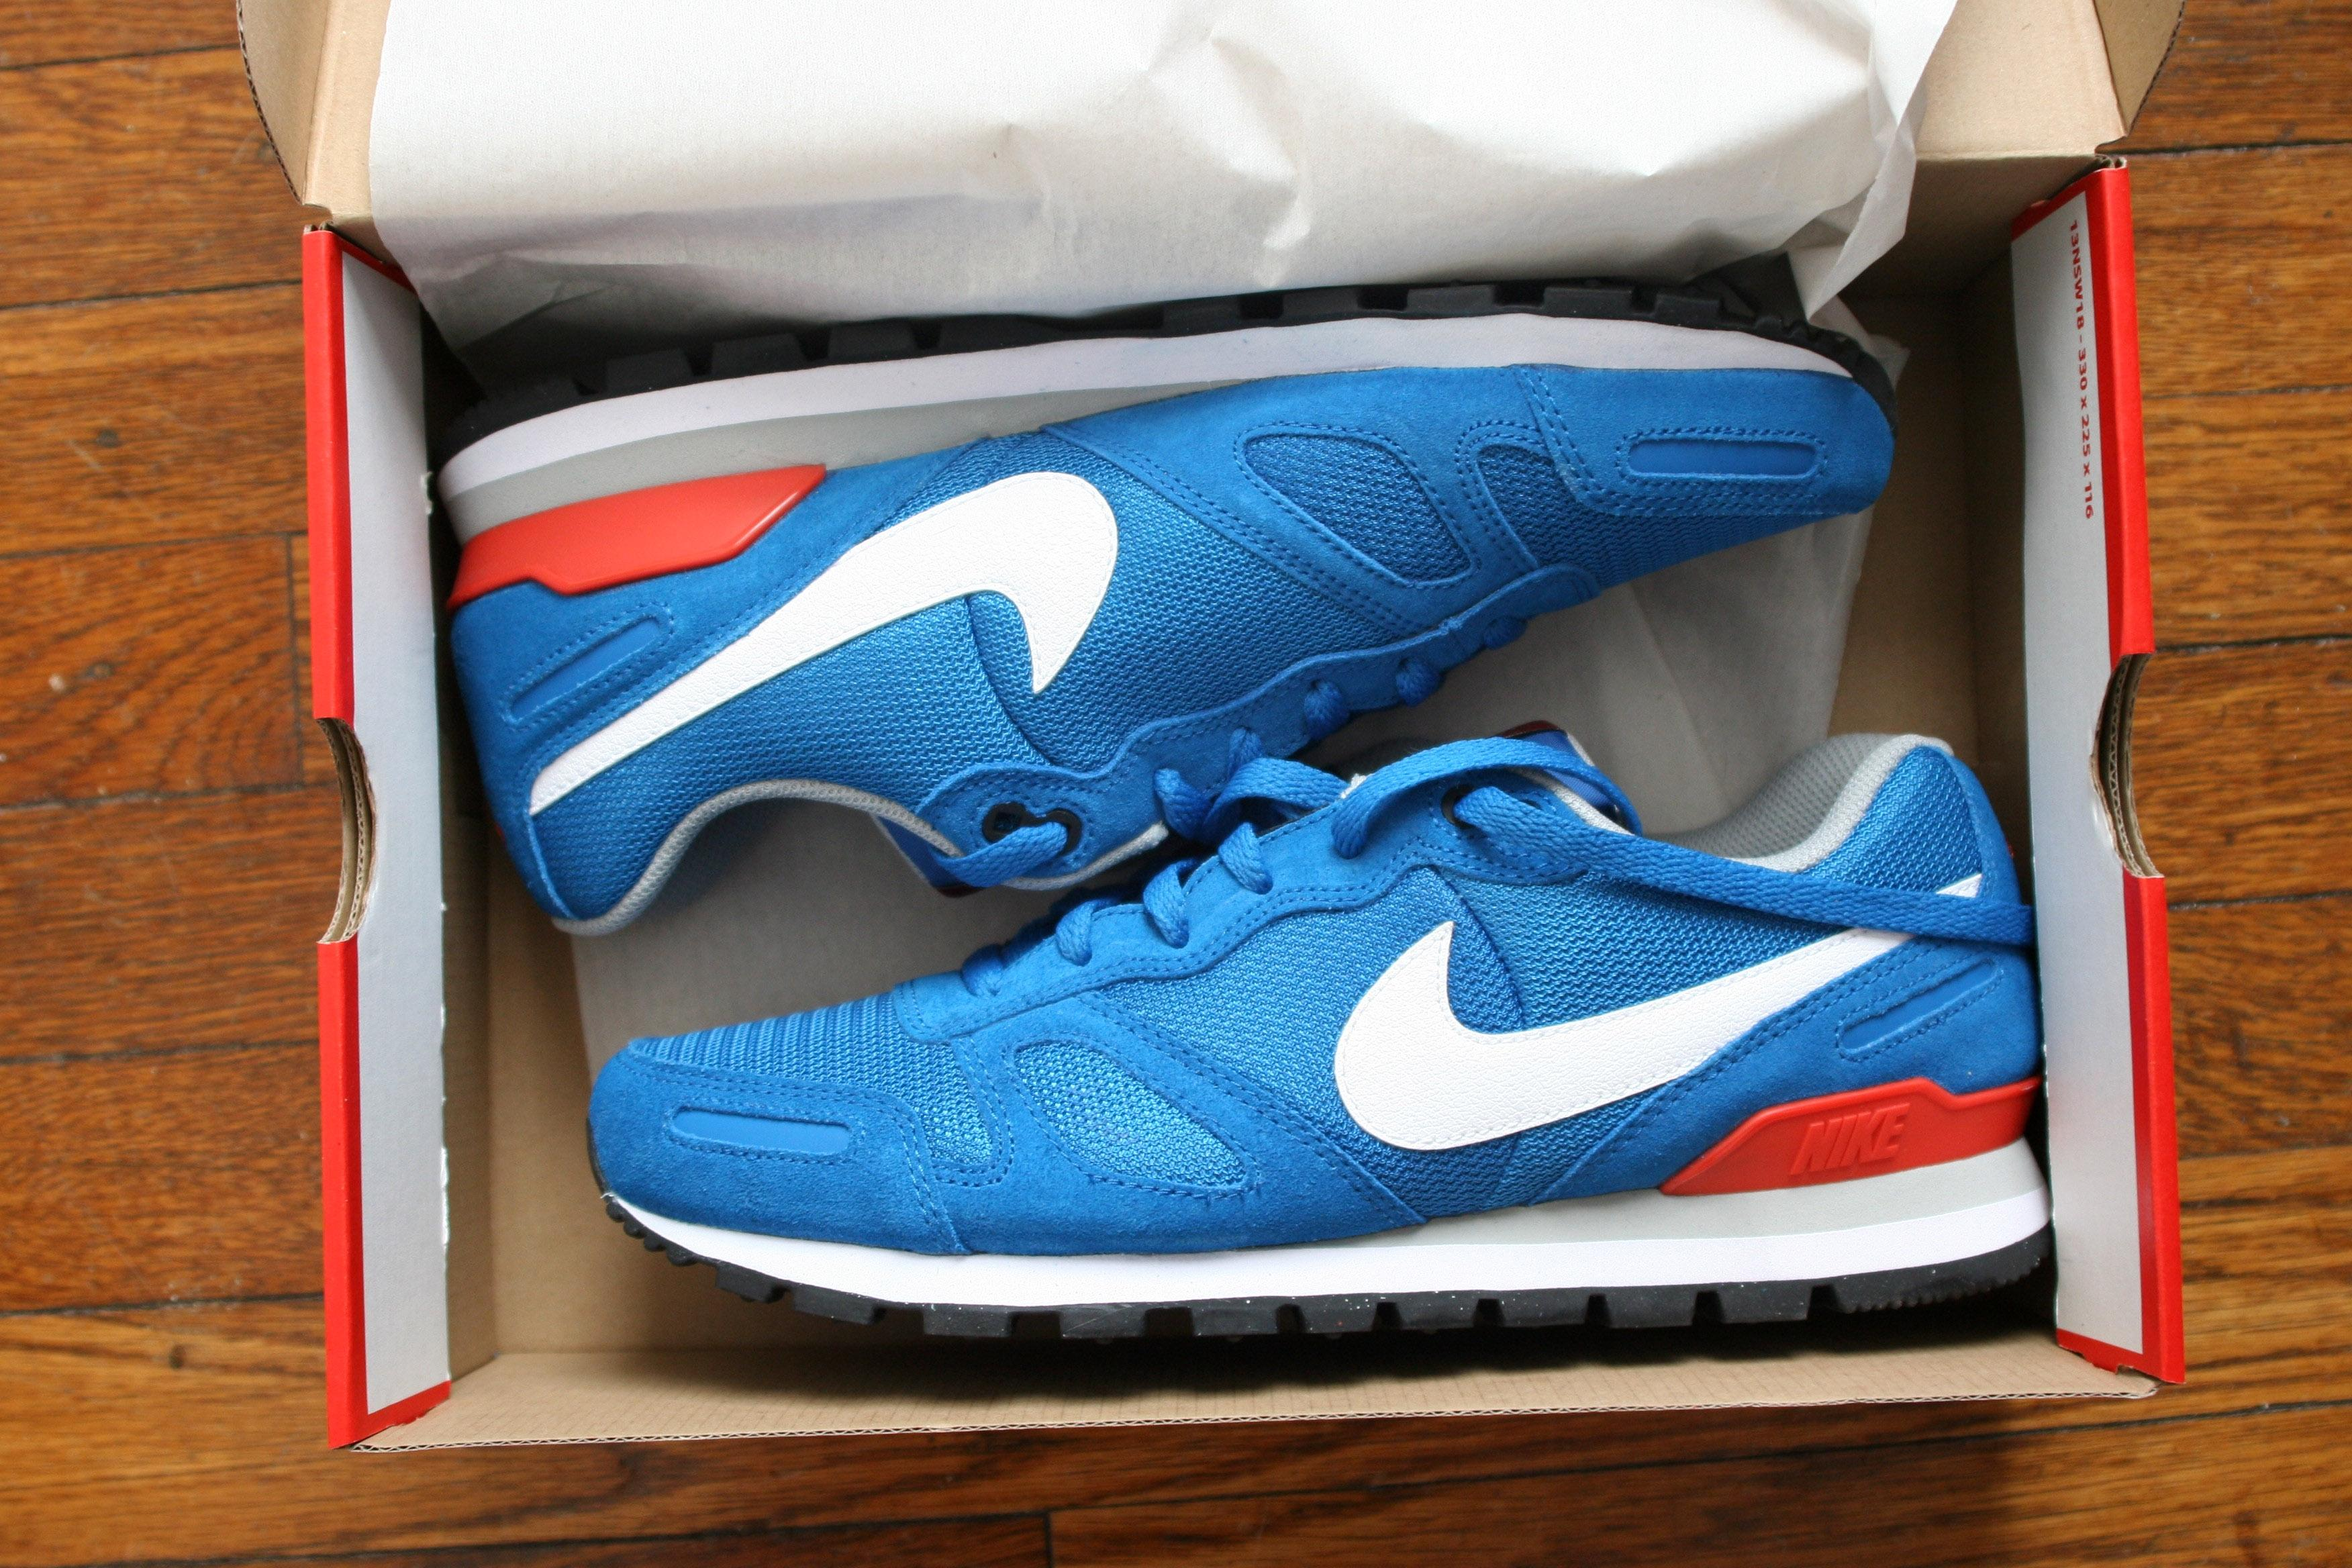 detailed look 9d6ca 4aaa5 ... france nike mens air waffle trainer military red blue orange athletic.  1234567 a5b0f c6dce